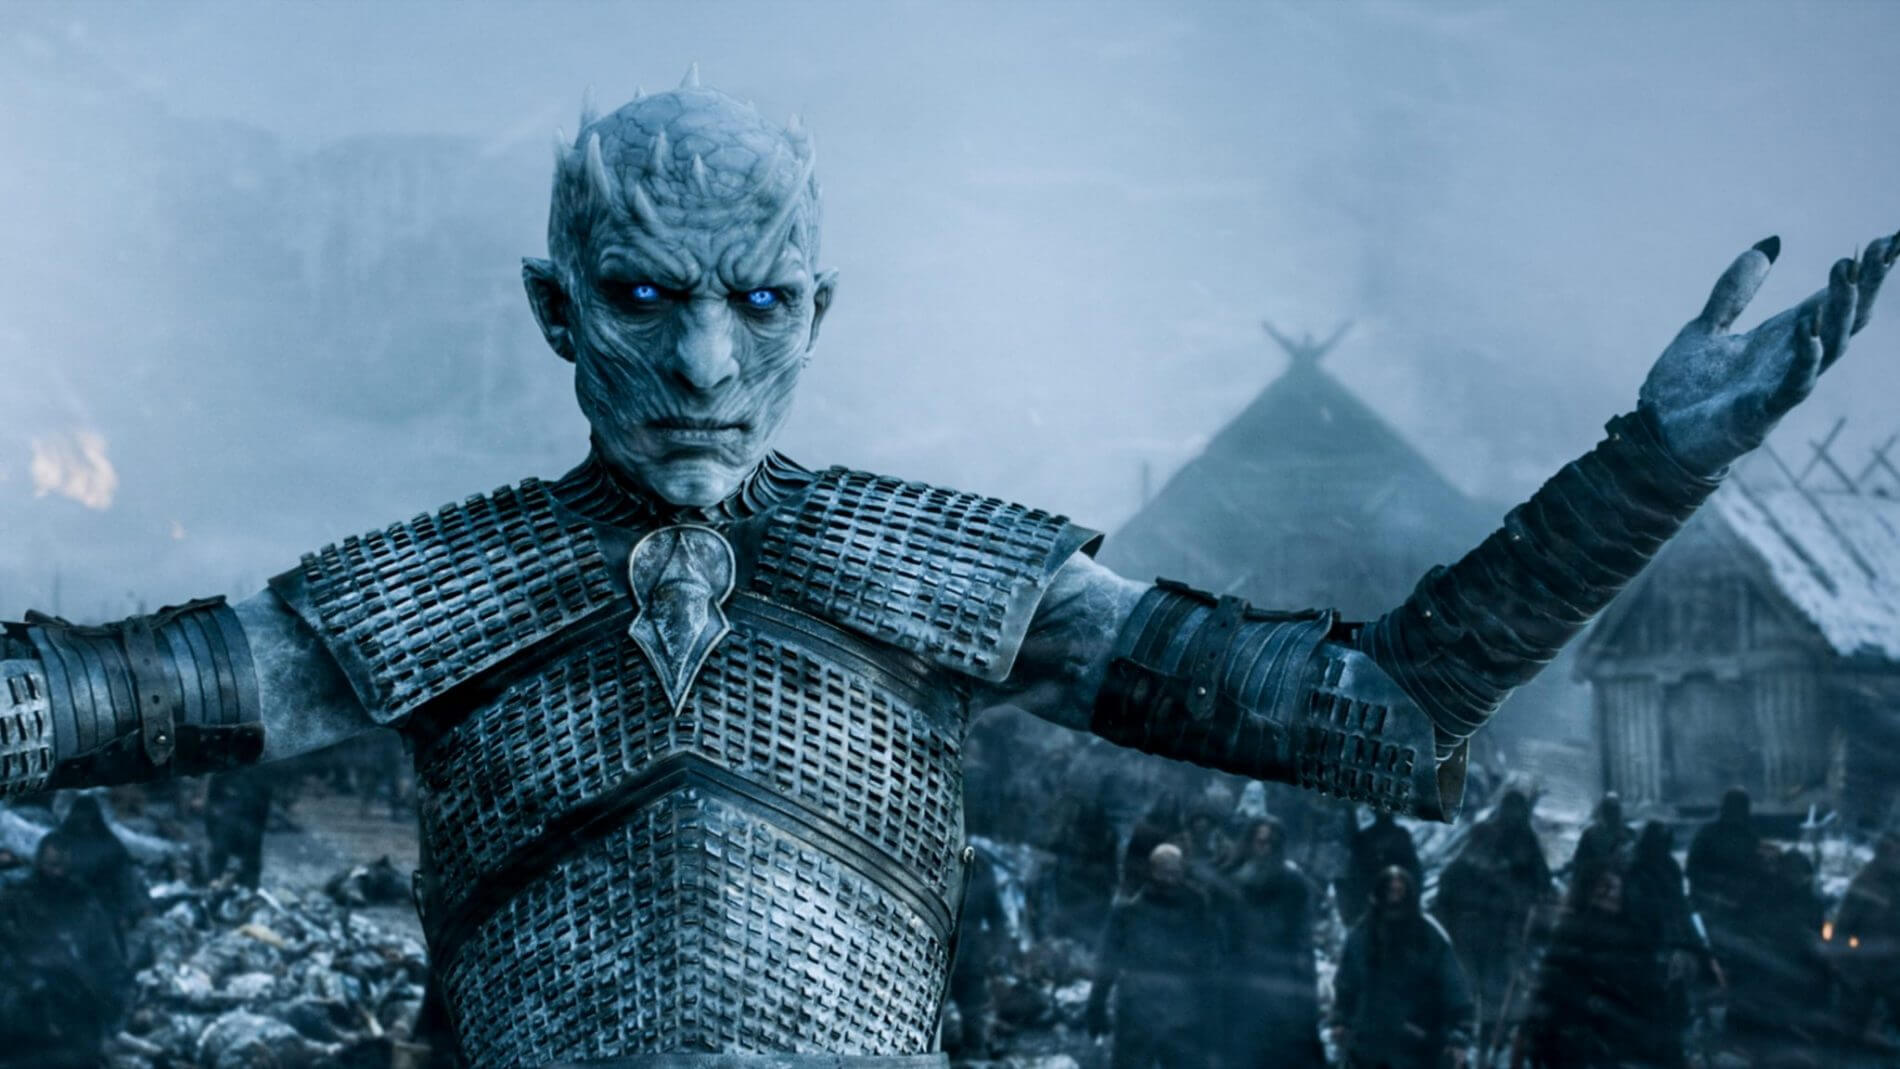 [Spoiler Warning] Organizational Leadership Lessons from the Night King